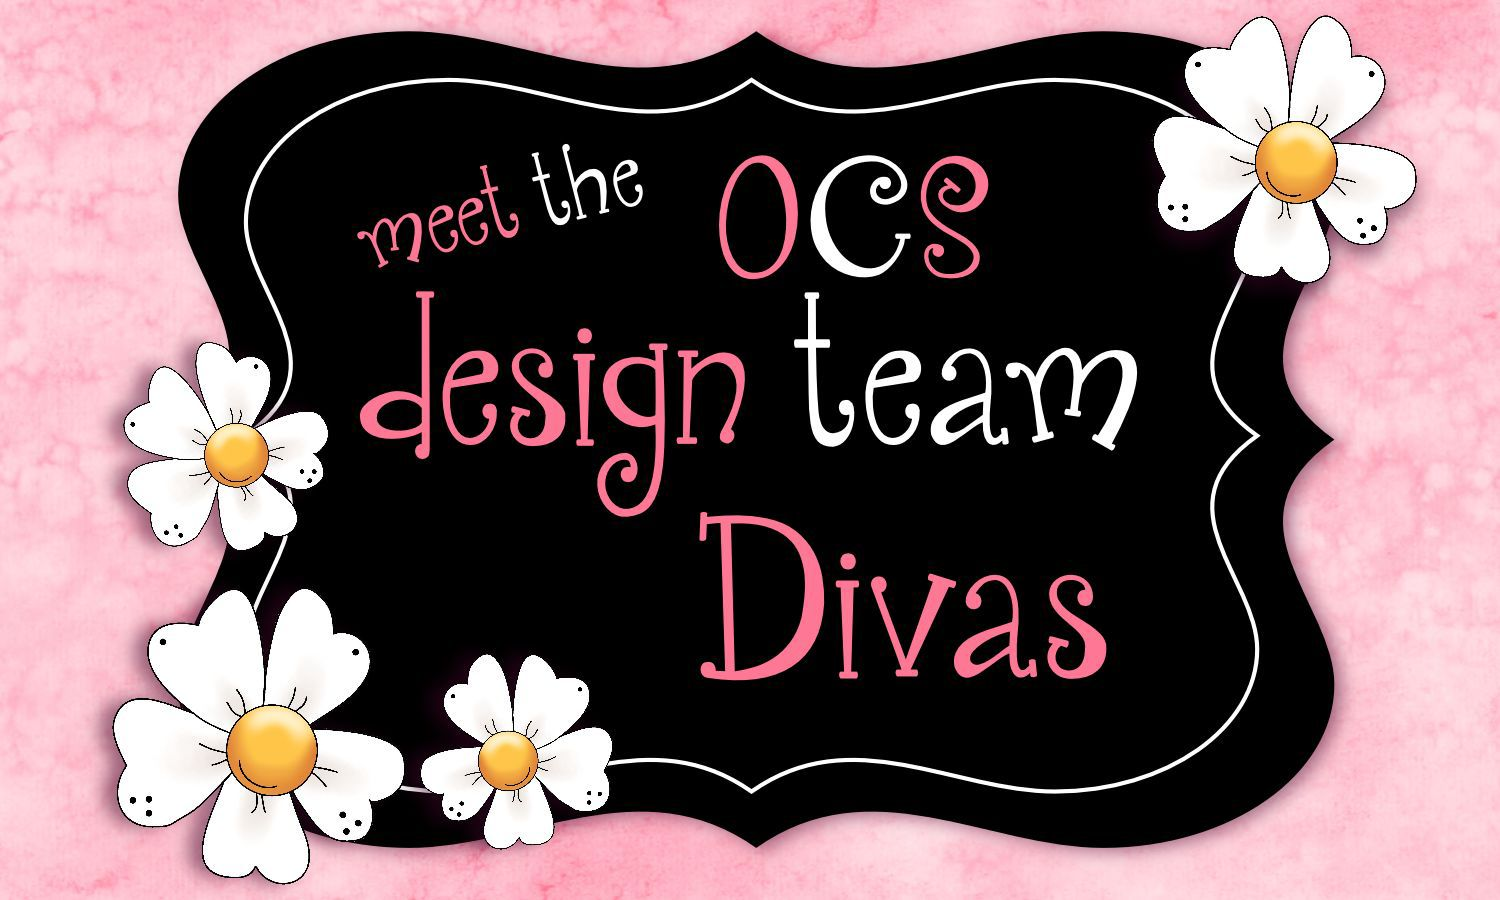 Meet the Design Team Divas